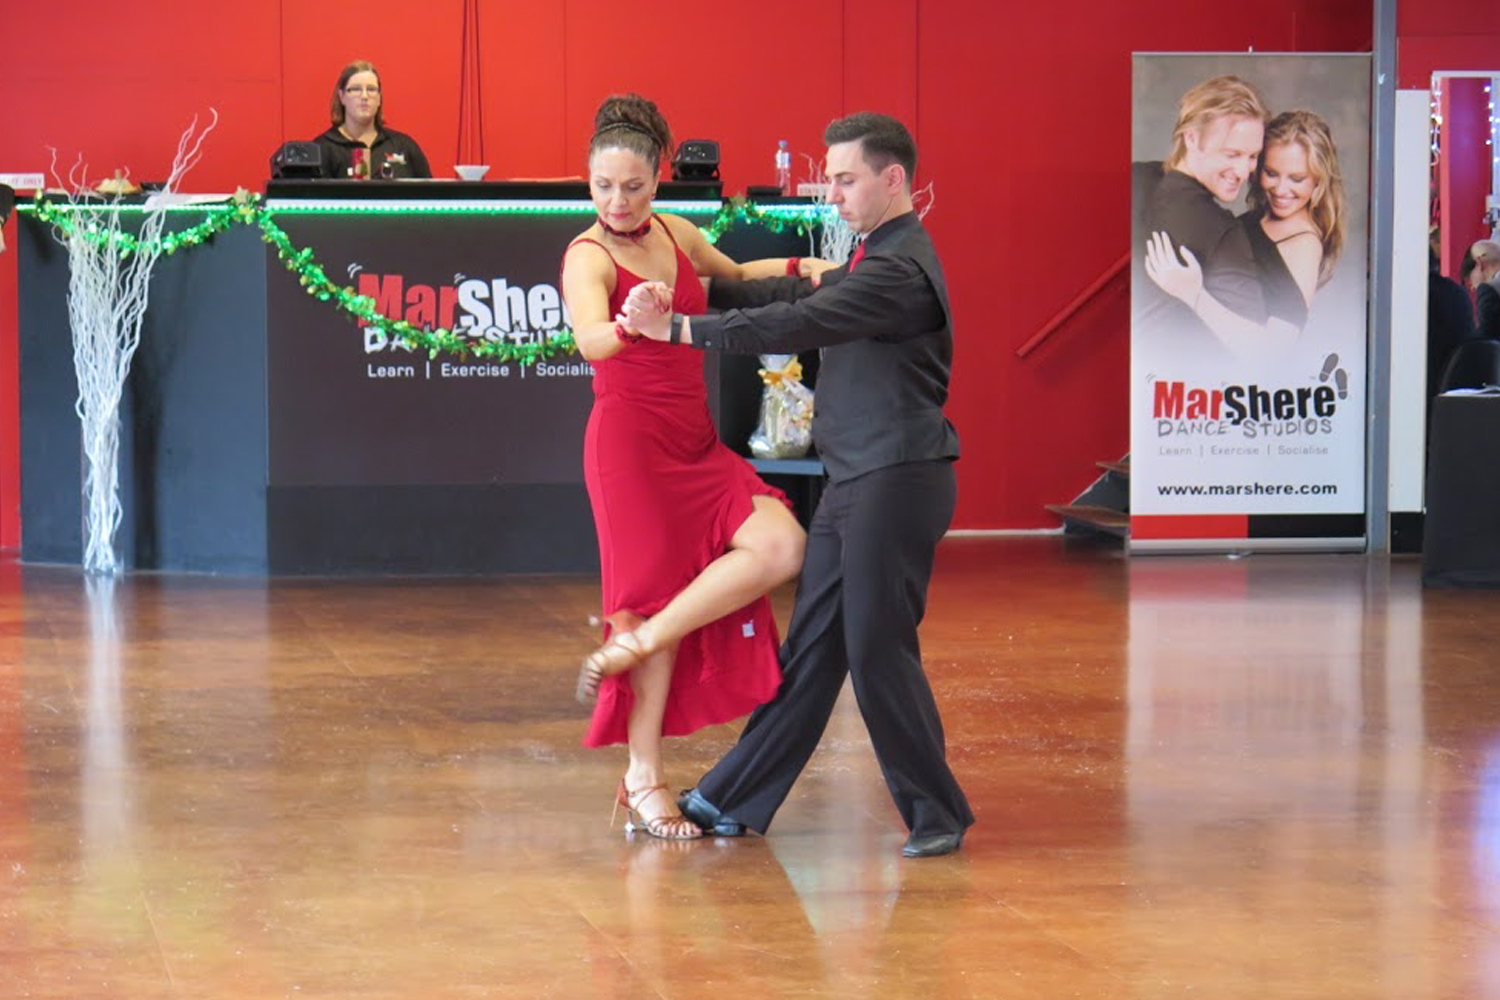 Learn to Dance Argentine tango